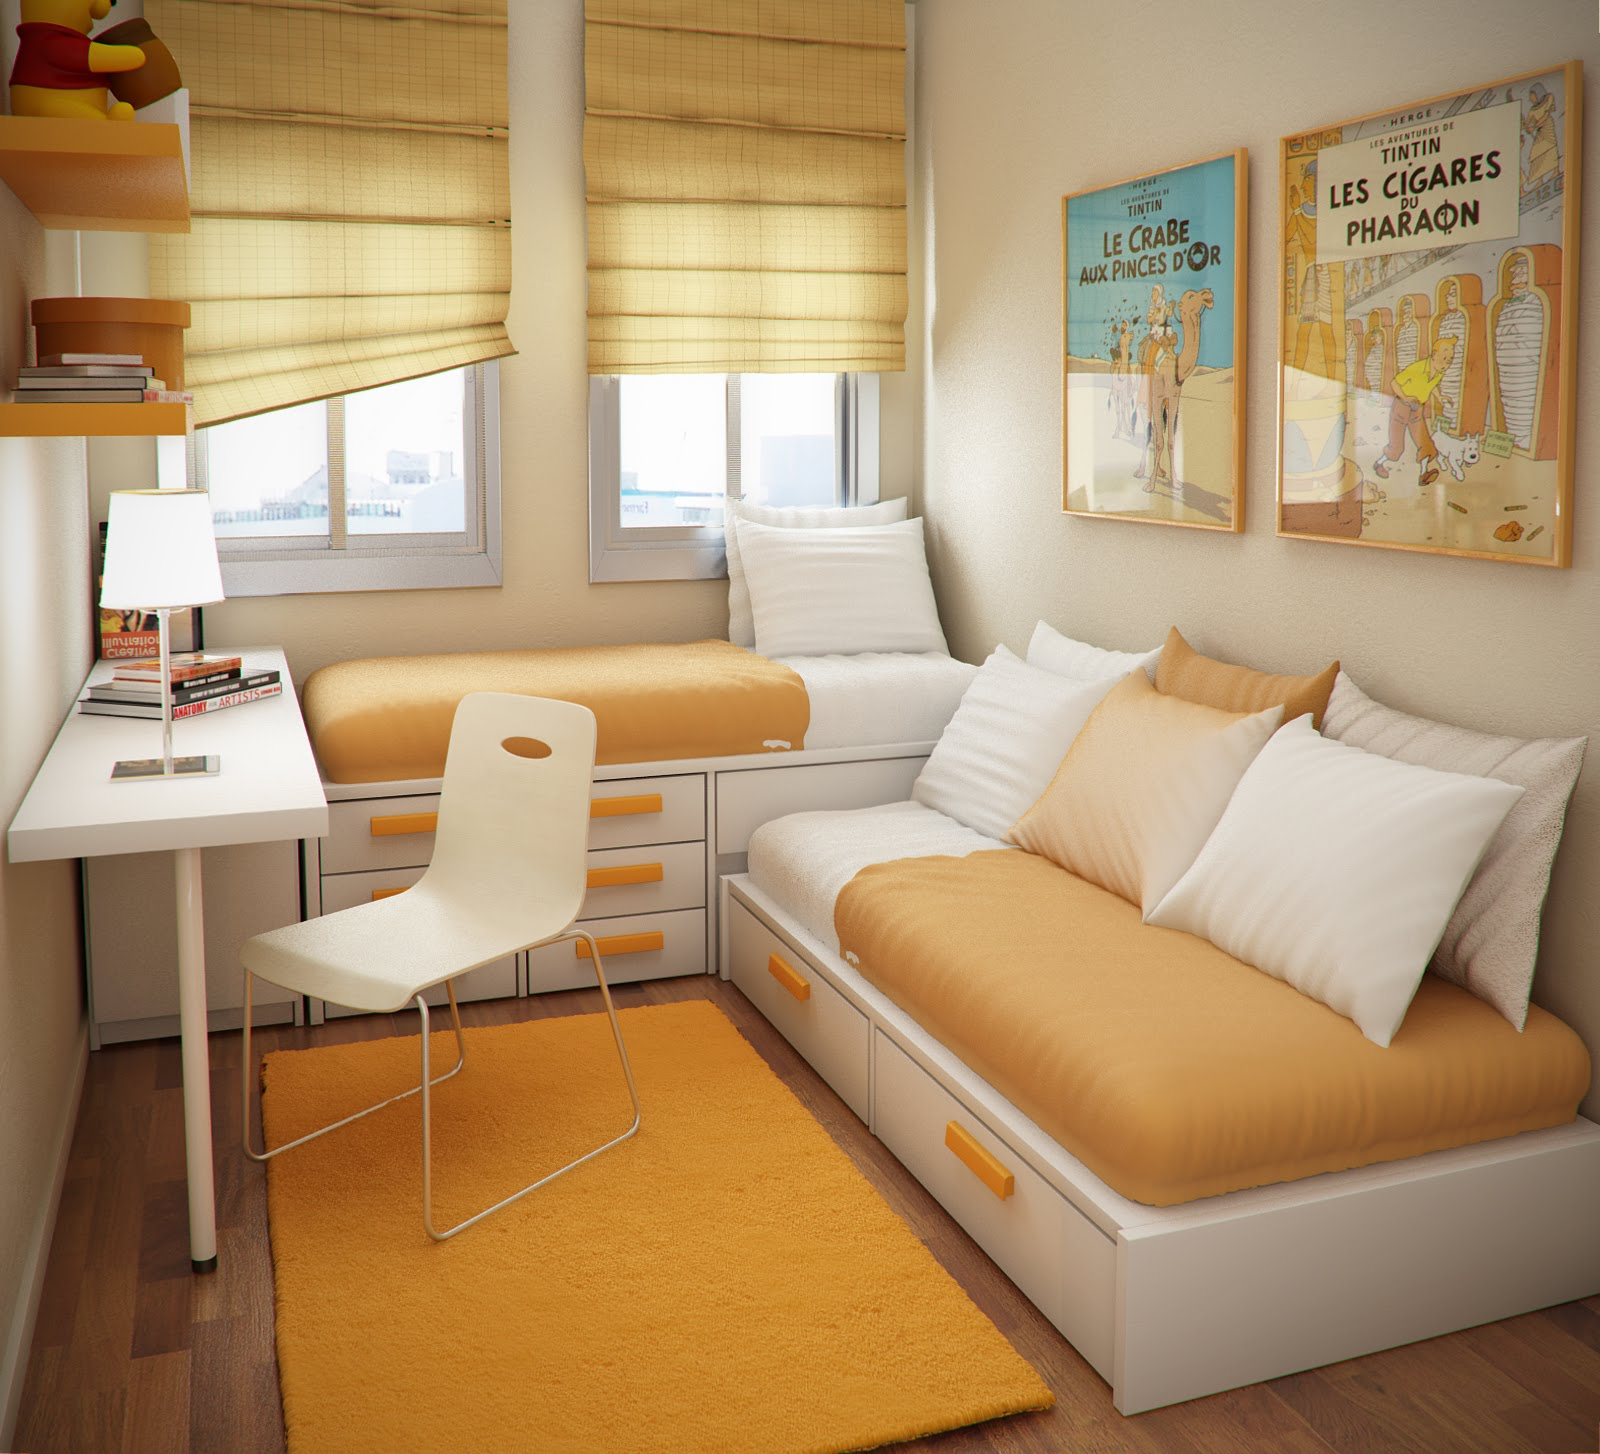 30 Small Bedroom Ideas Amazing For The Modern Small Home Decor Units